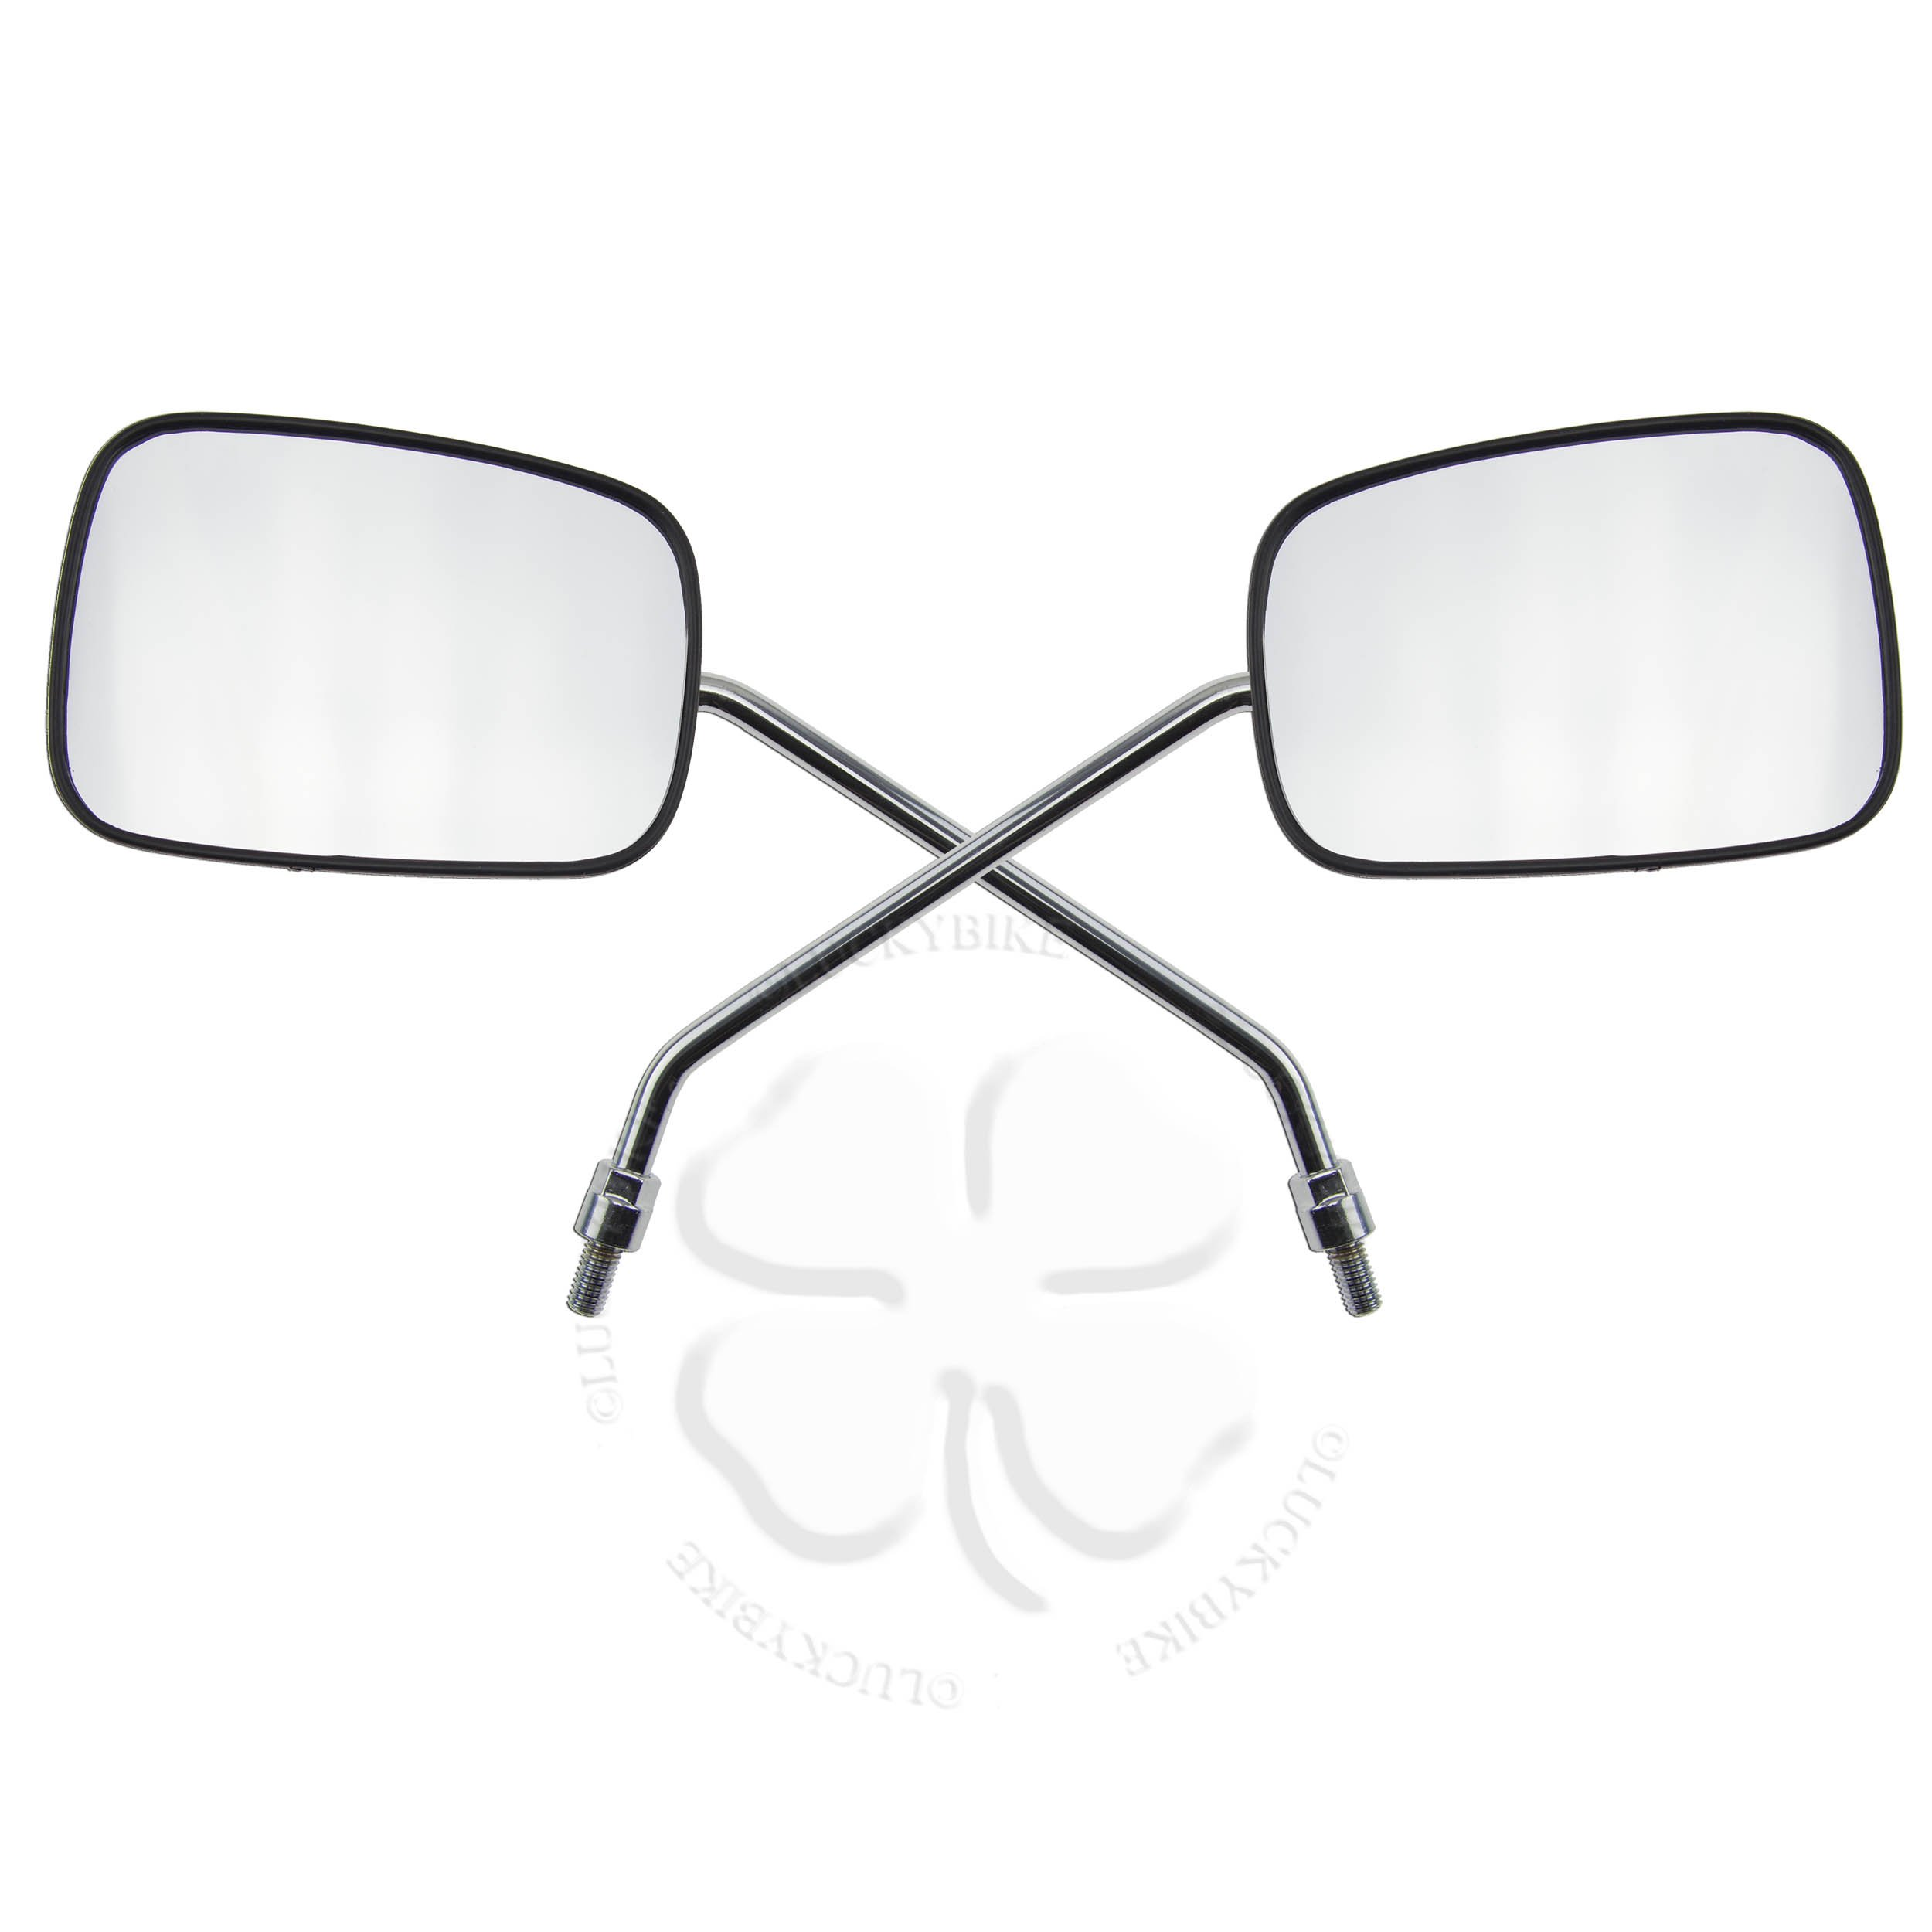 Mirrors - Universal - Left/Right Set - Right Hand Thread - 8mm Mounting - Black